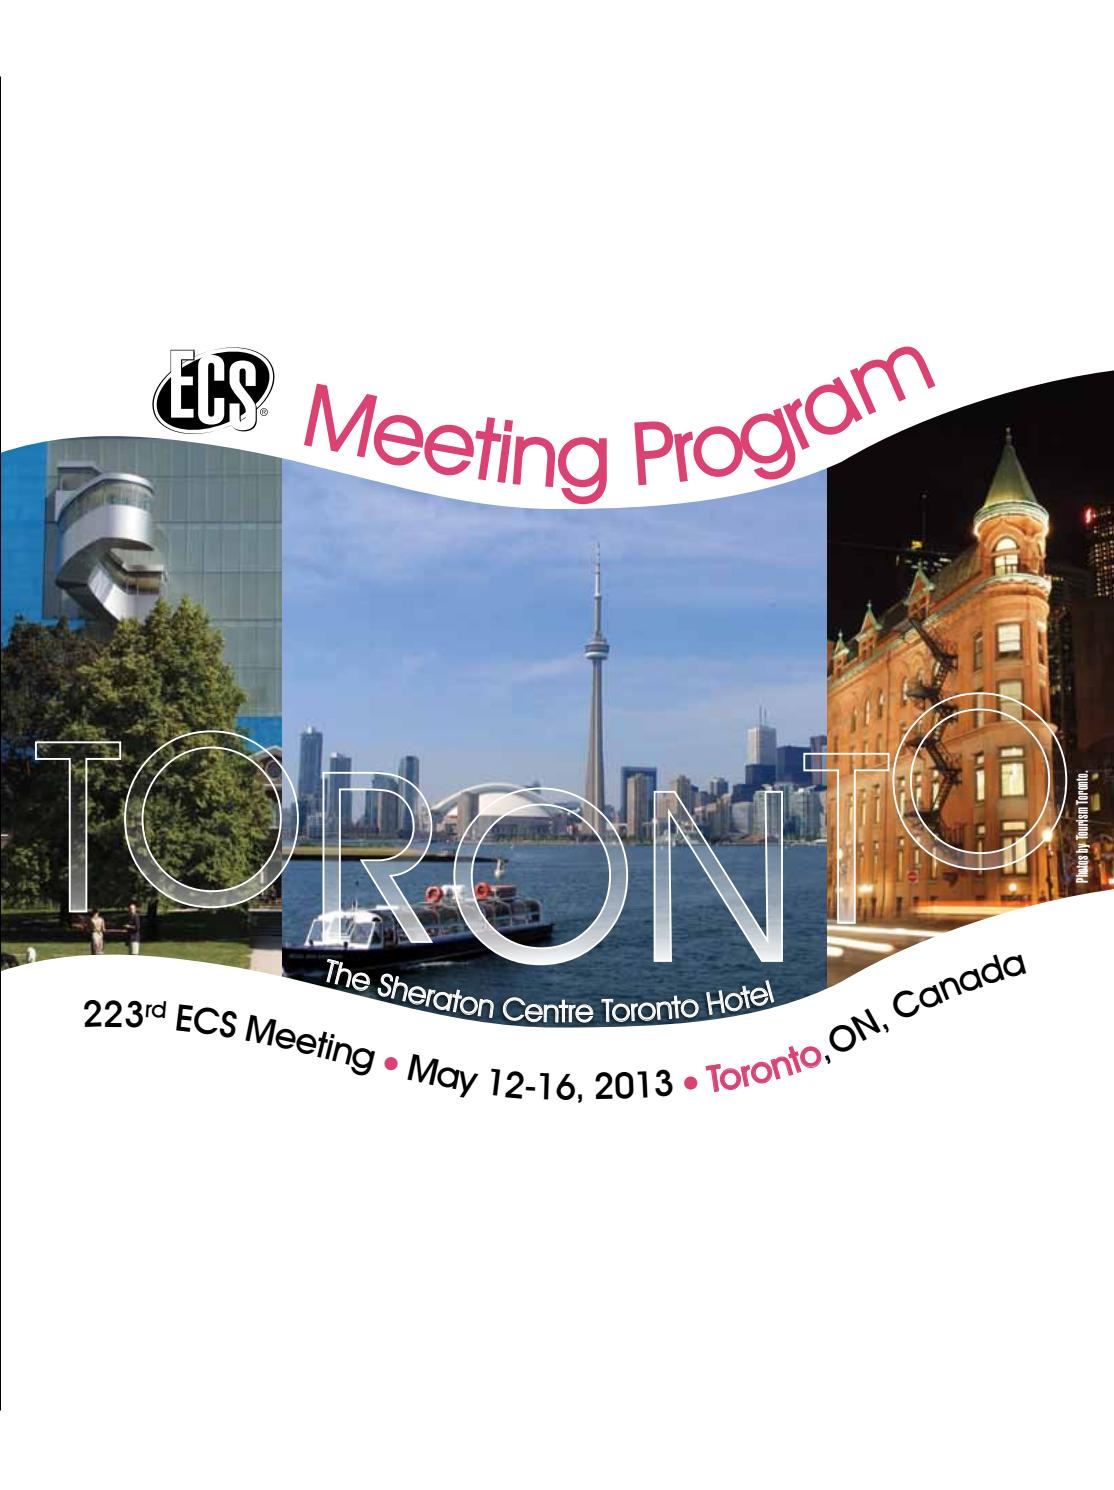 223rd Ecs Meeting Program By The Electrochemical Society Surya Pro Mild Issuu